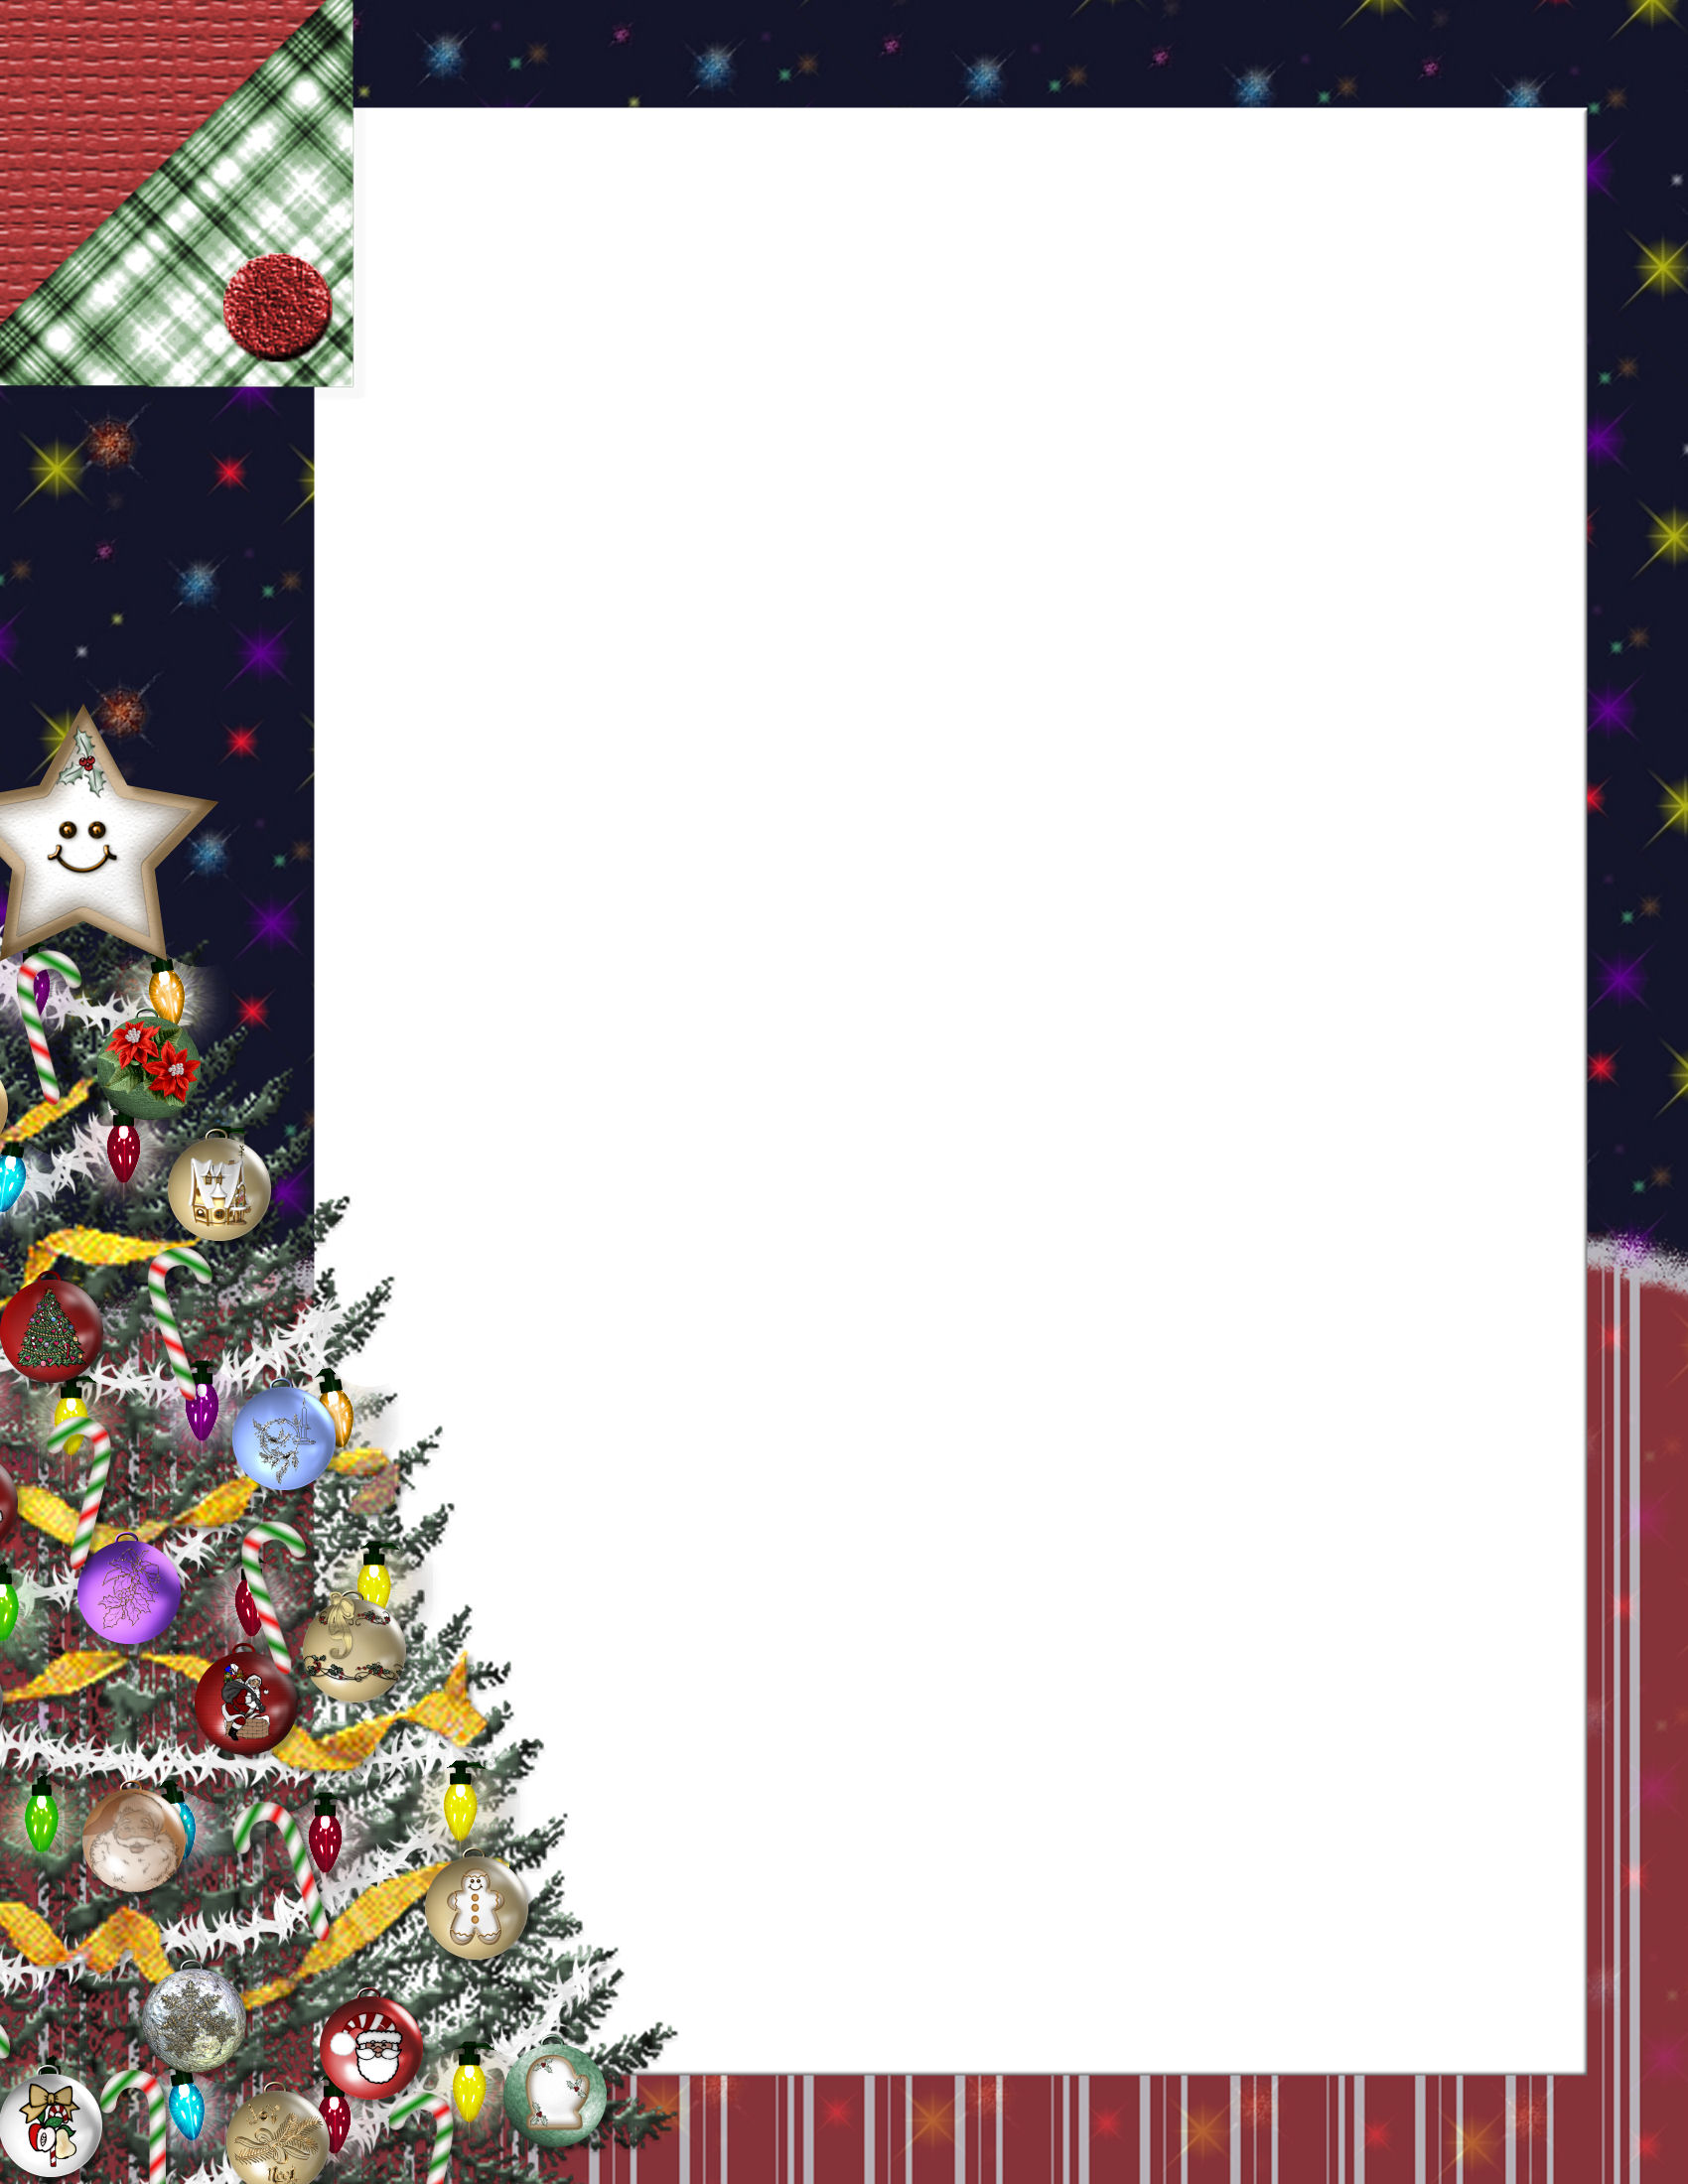 Christmas Stationery.Christmas 1 Free Stationery Com Template Downloads